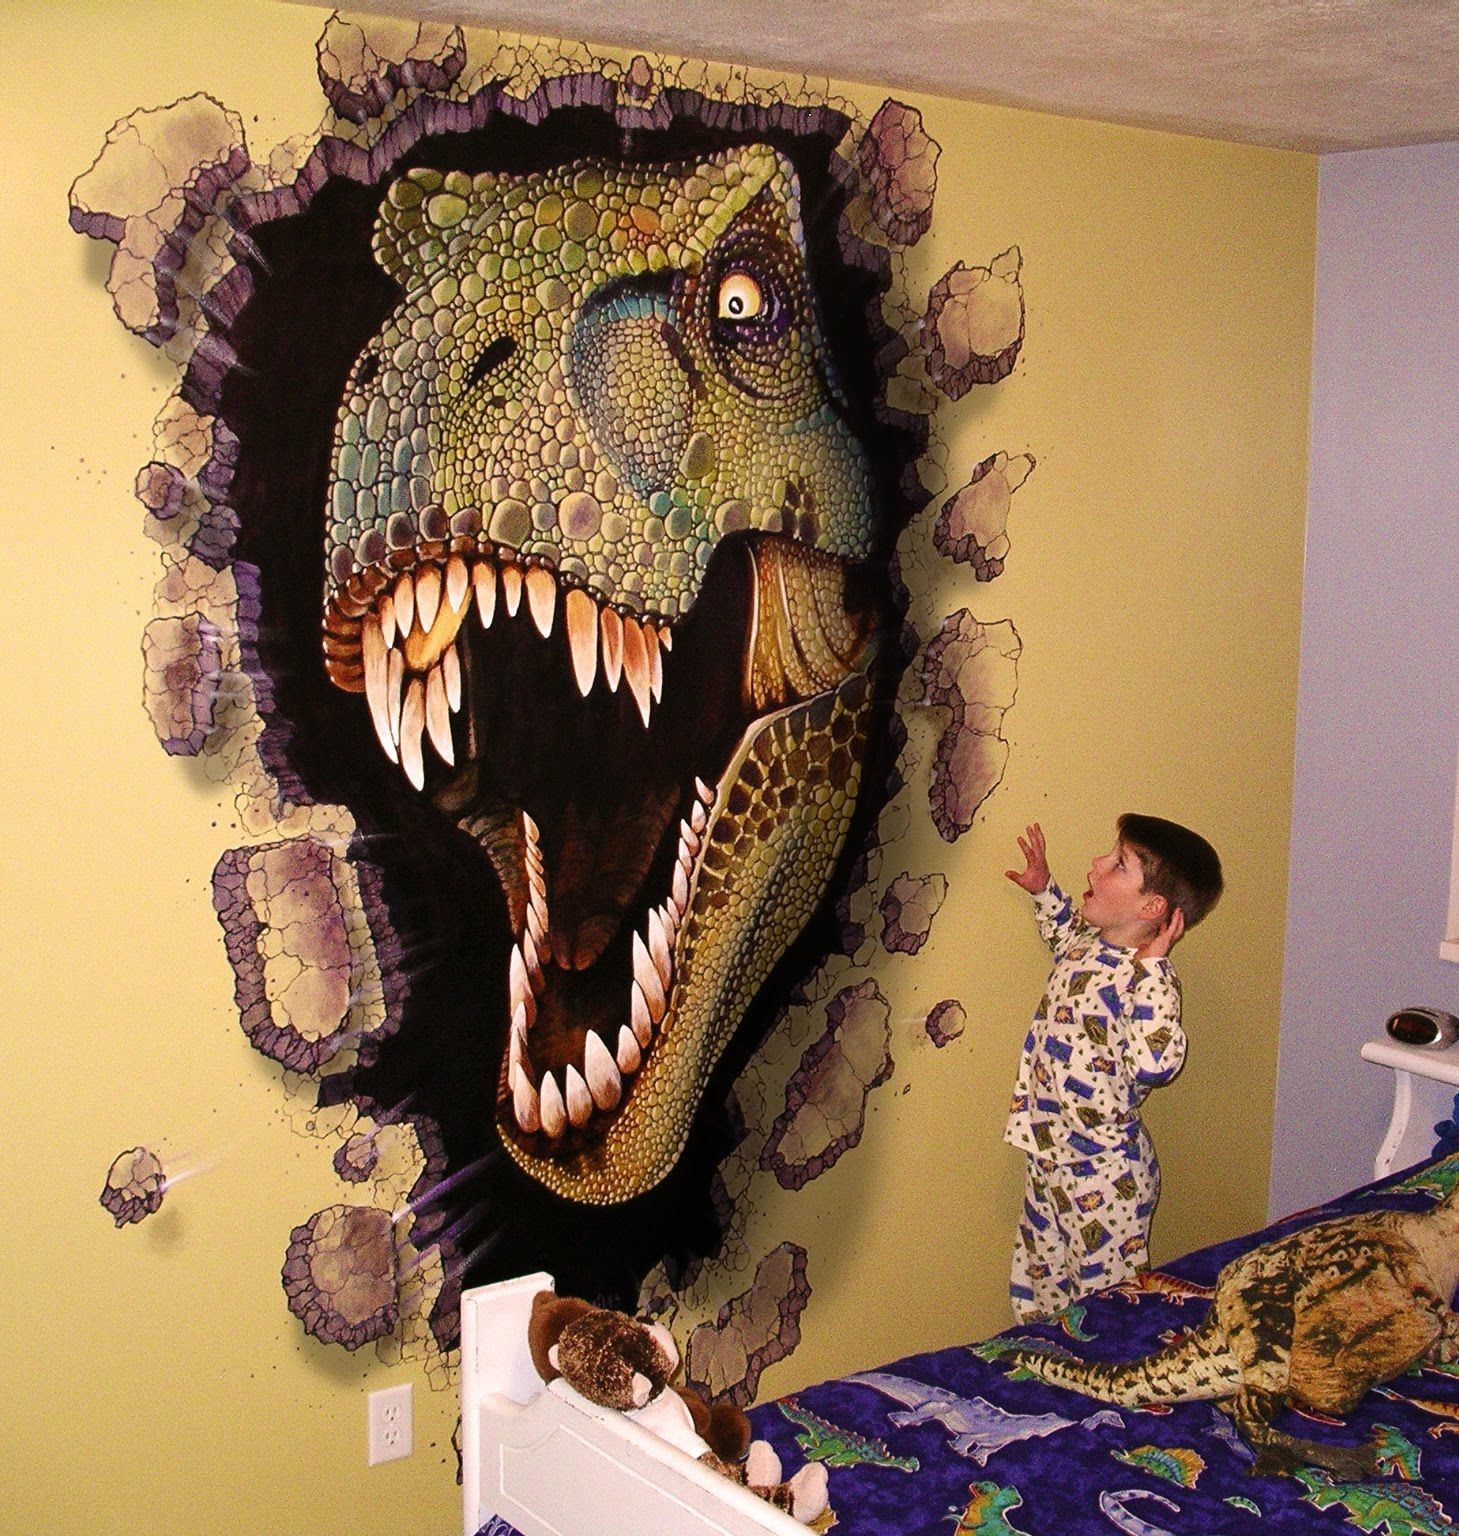 Boys Dinosaur Room Miles Woods Art Wall Murals